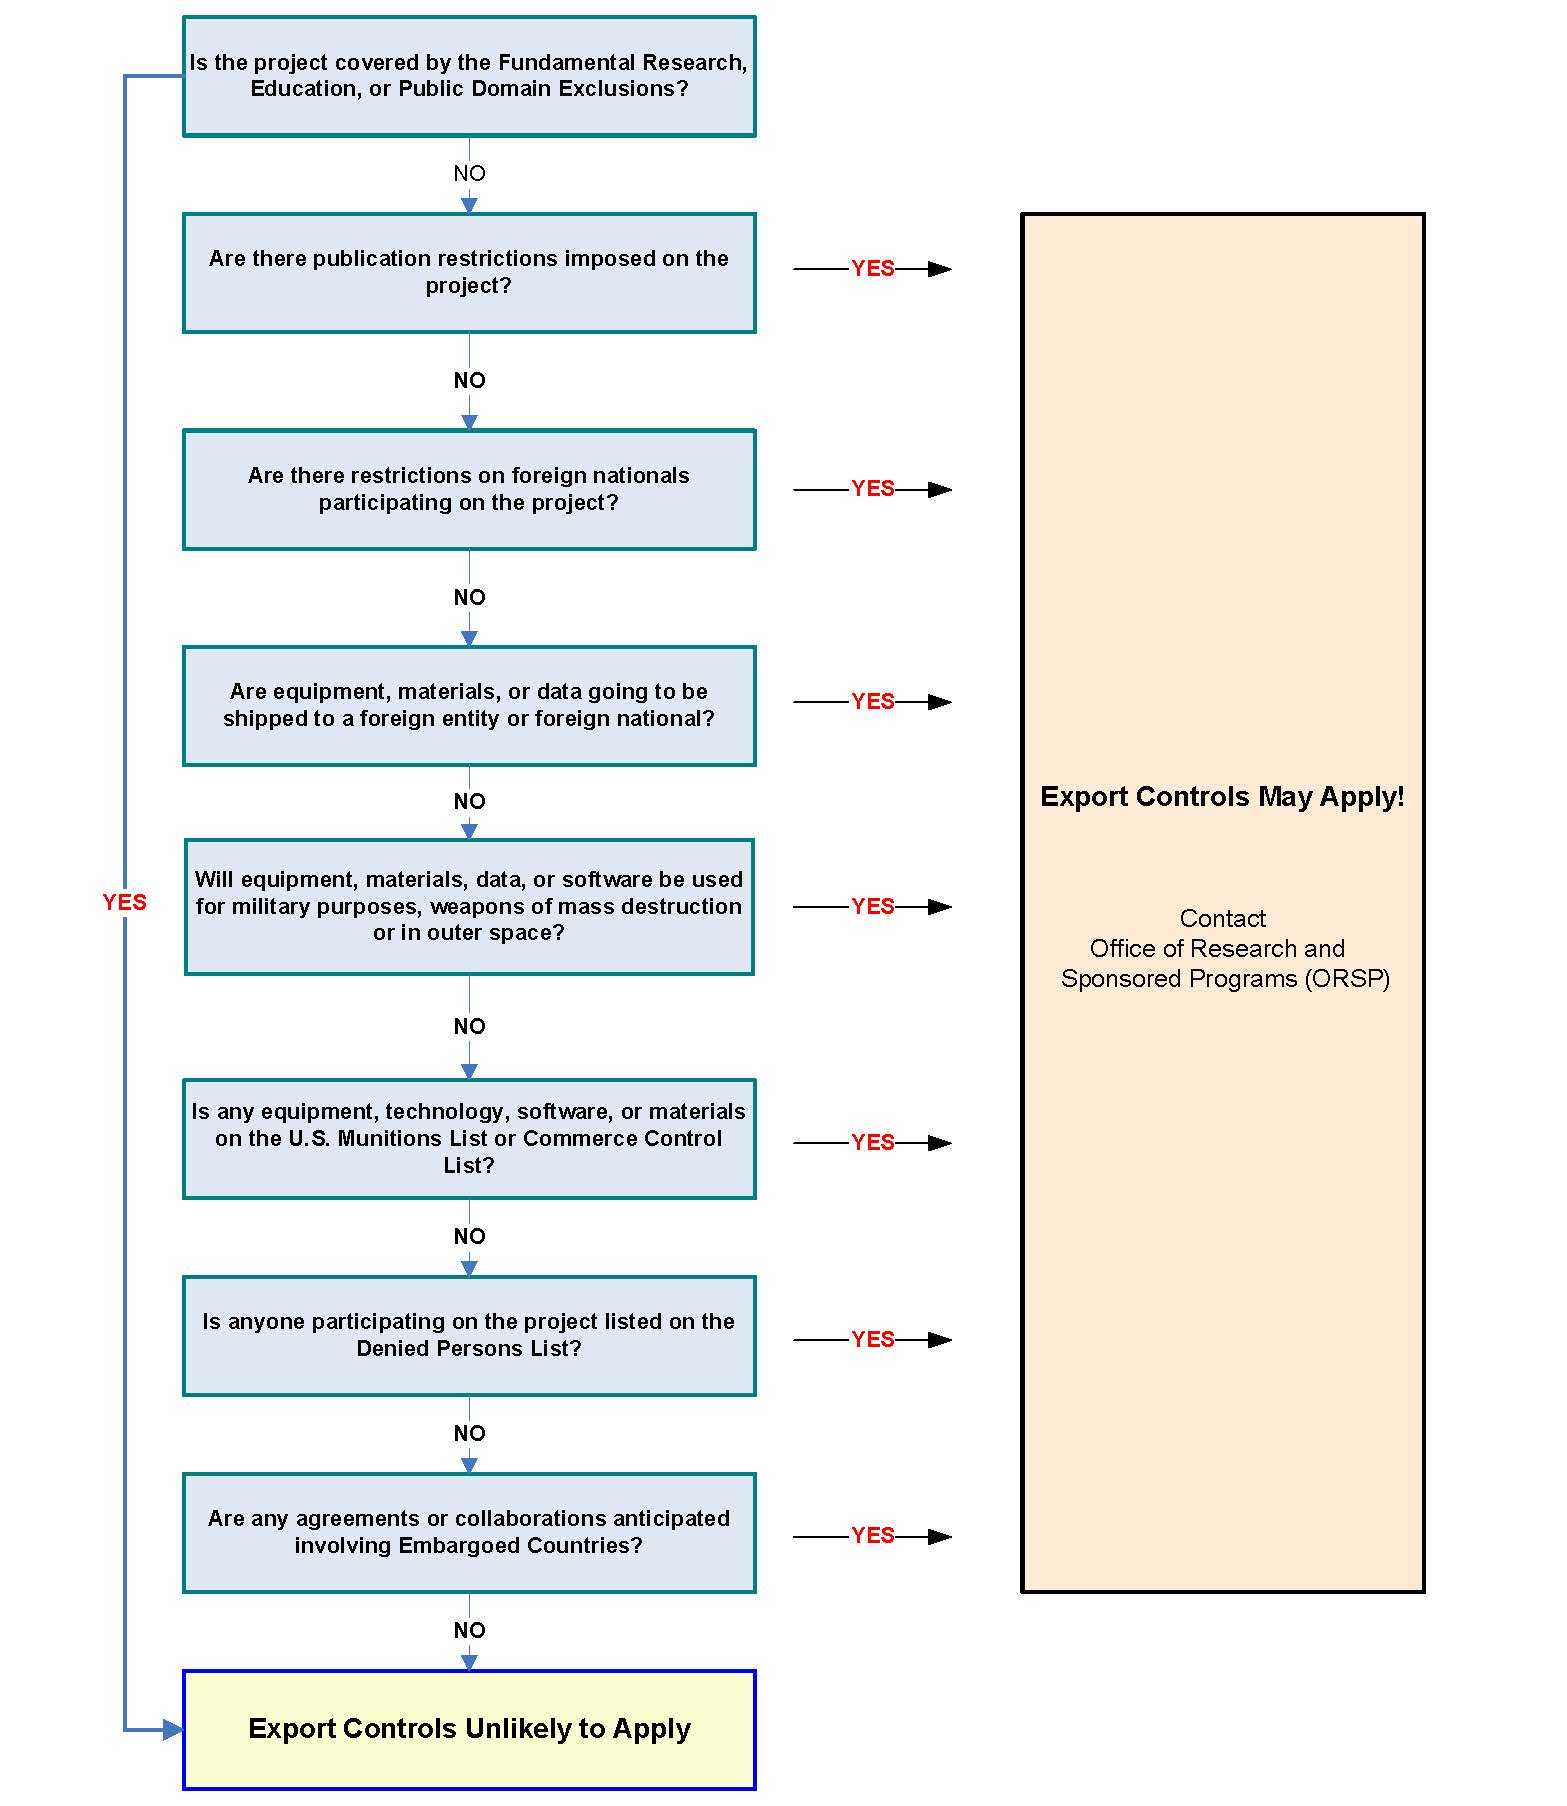 Decision tree for export controls